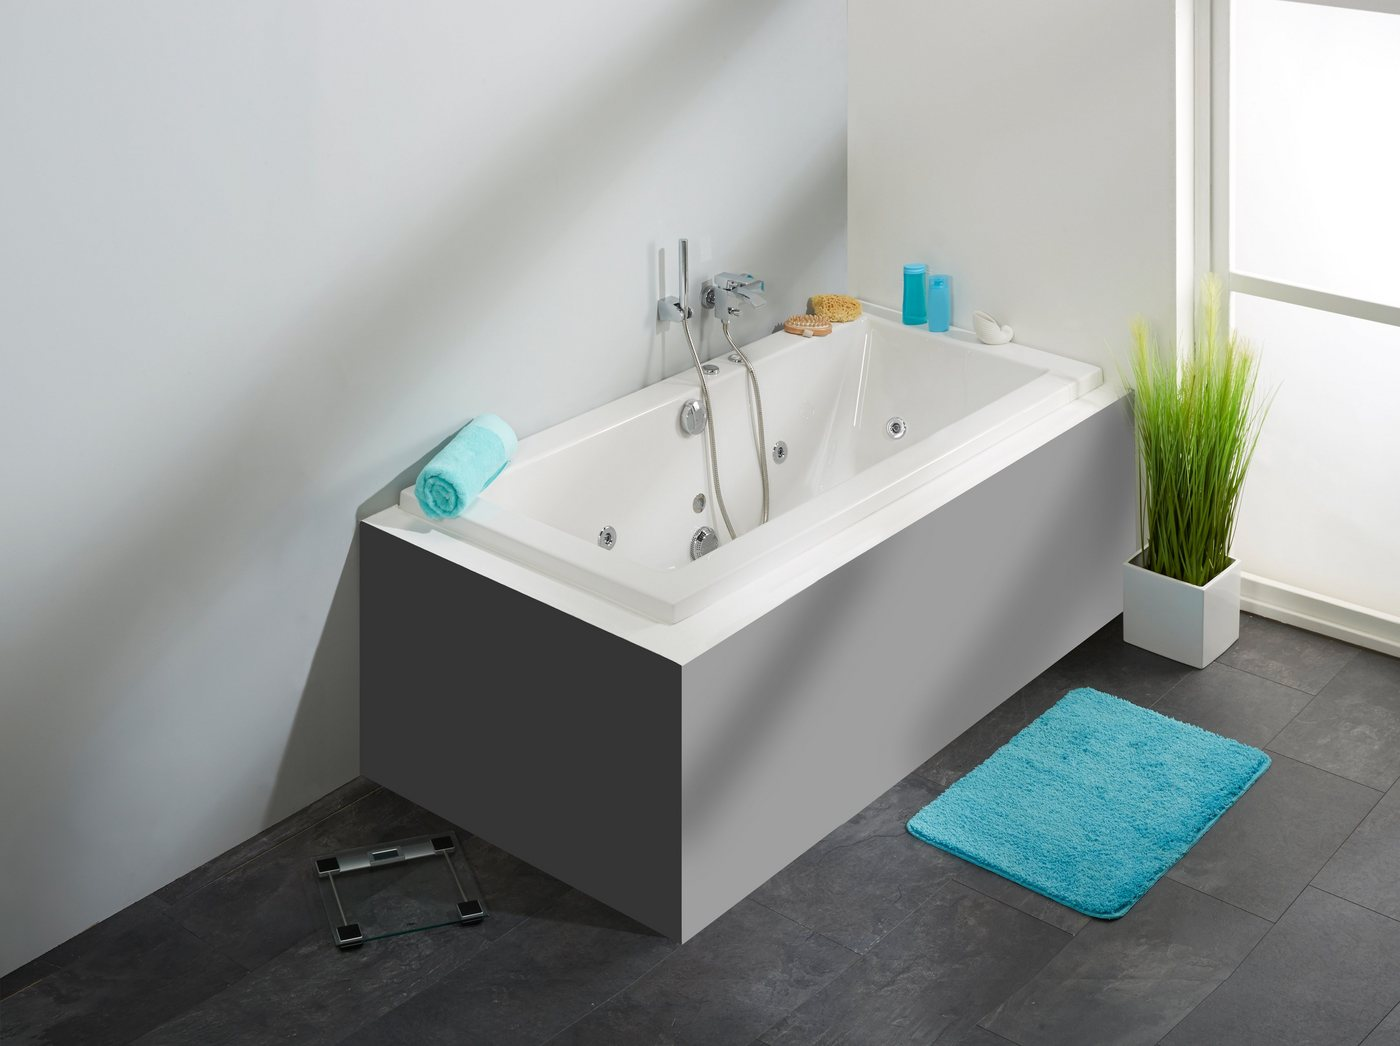 OTTOFOND Whirlpoolwanne »Cubic«, B/T/H in cm: 180/80/65,5; mit Whirlpool-System 1